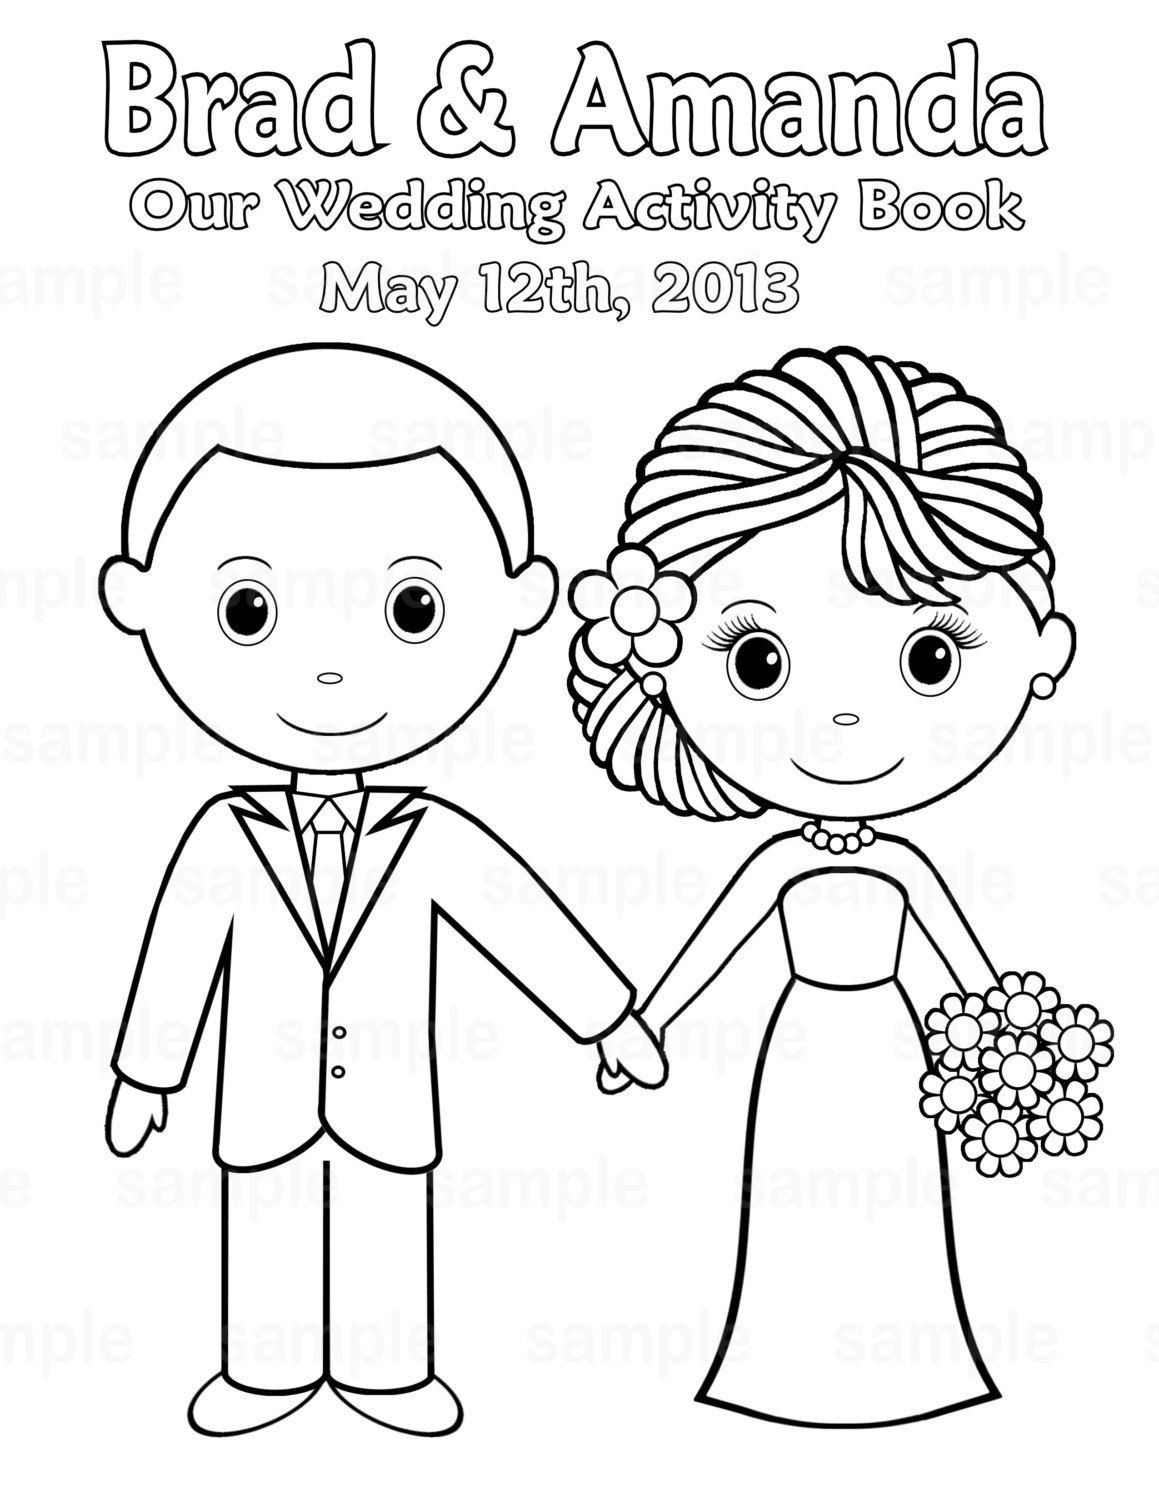 Coloring Book For Kids Pdf  Printable Personalized Wedding coloring activity book